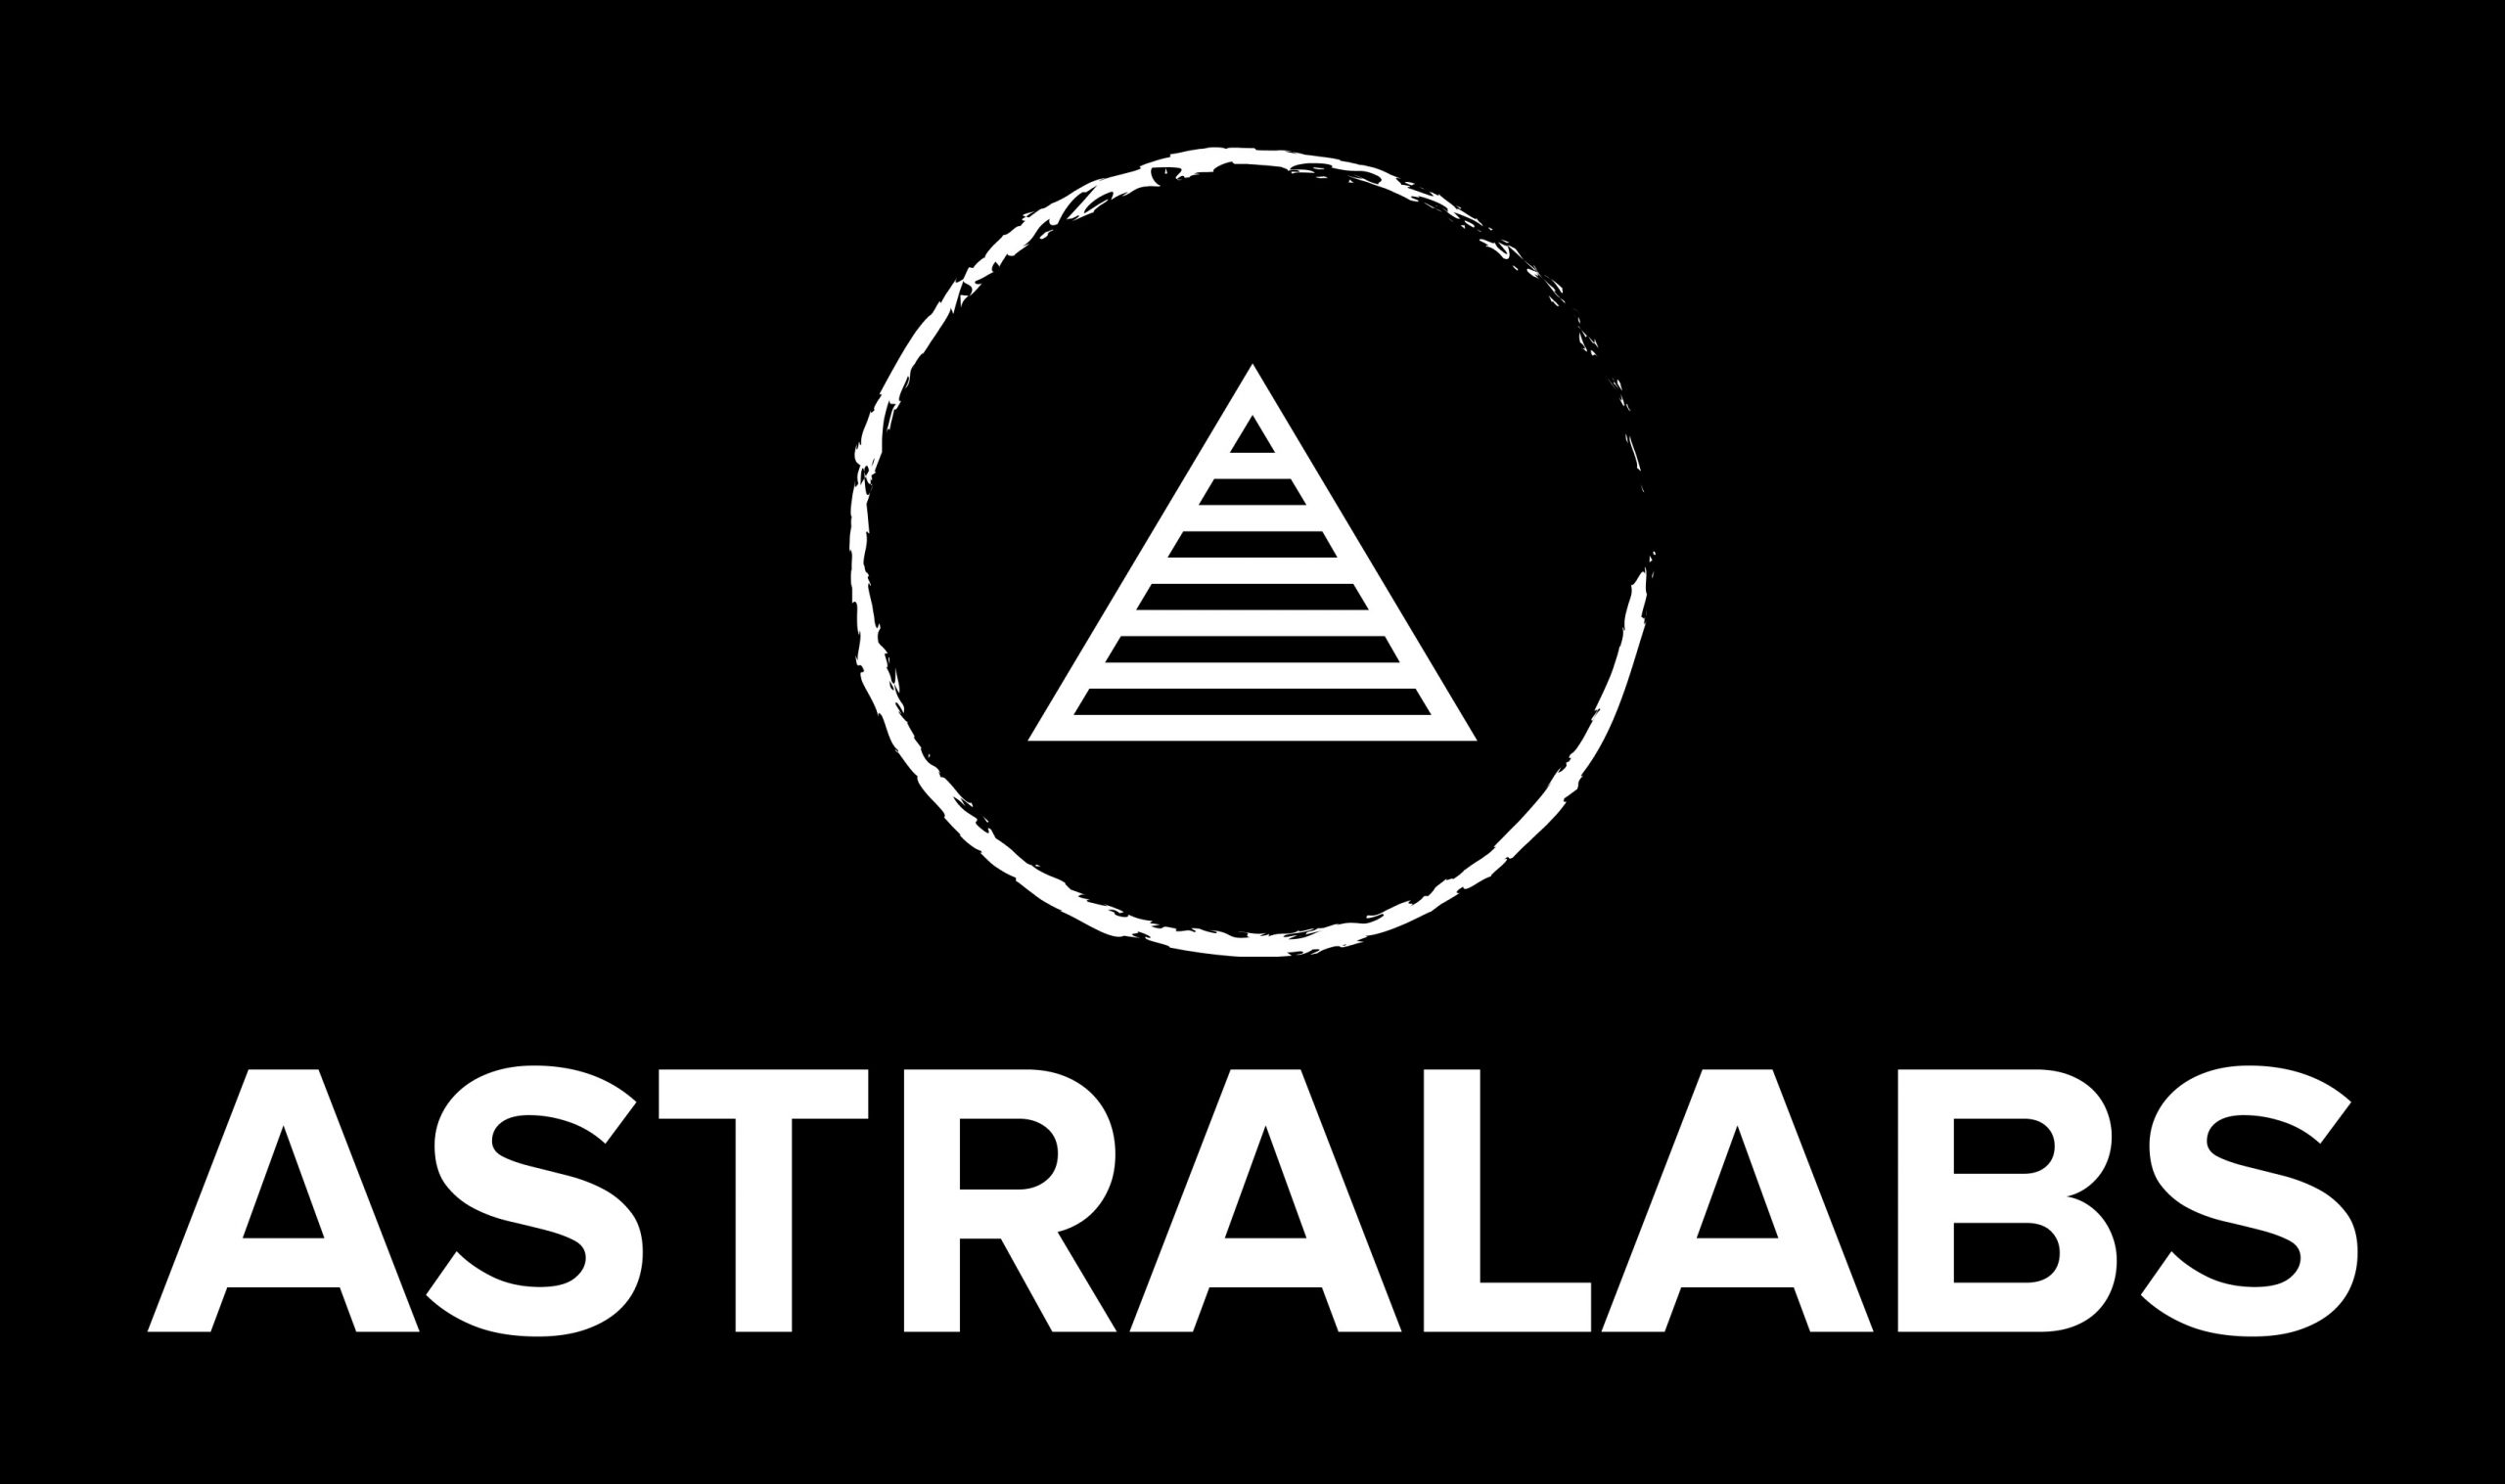 ASTRALABS